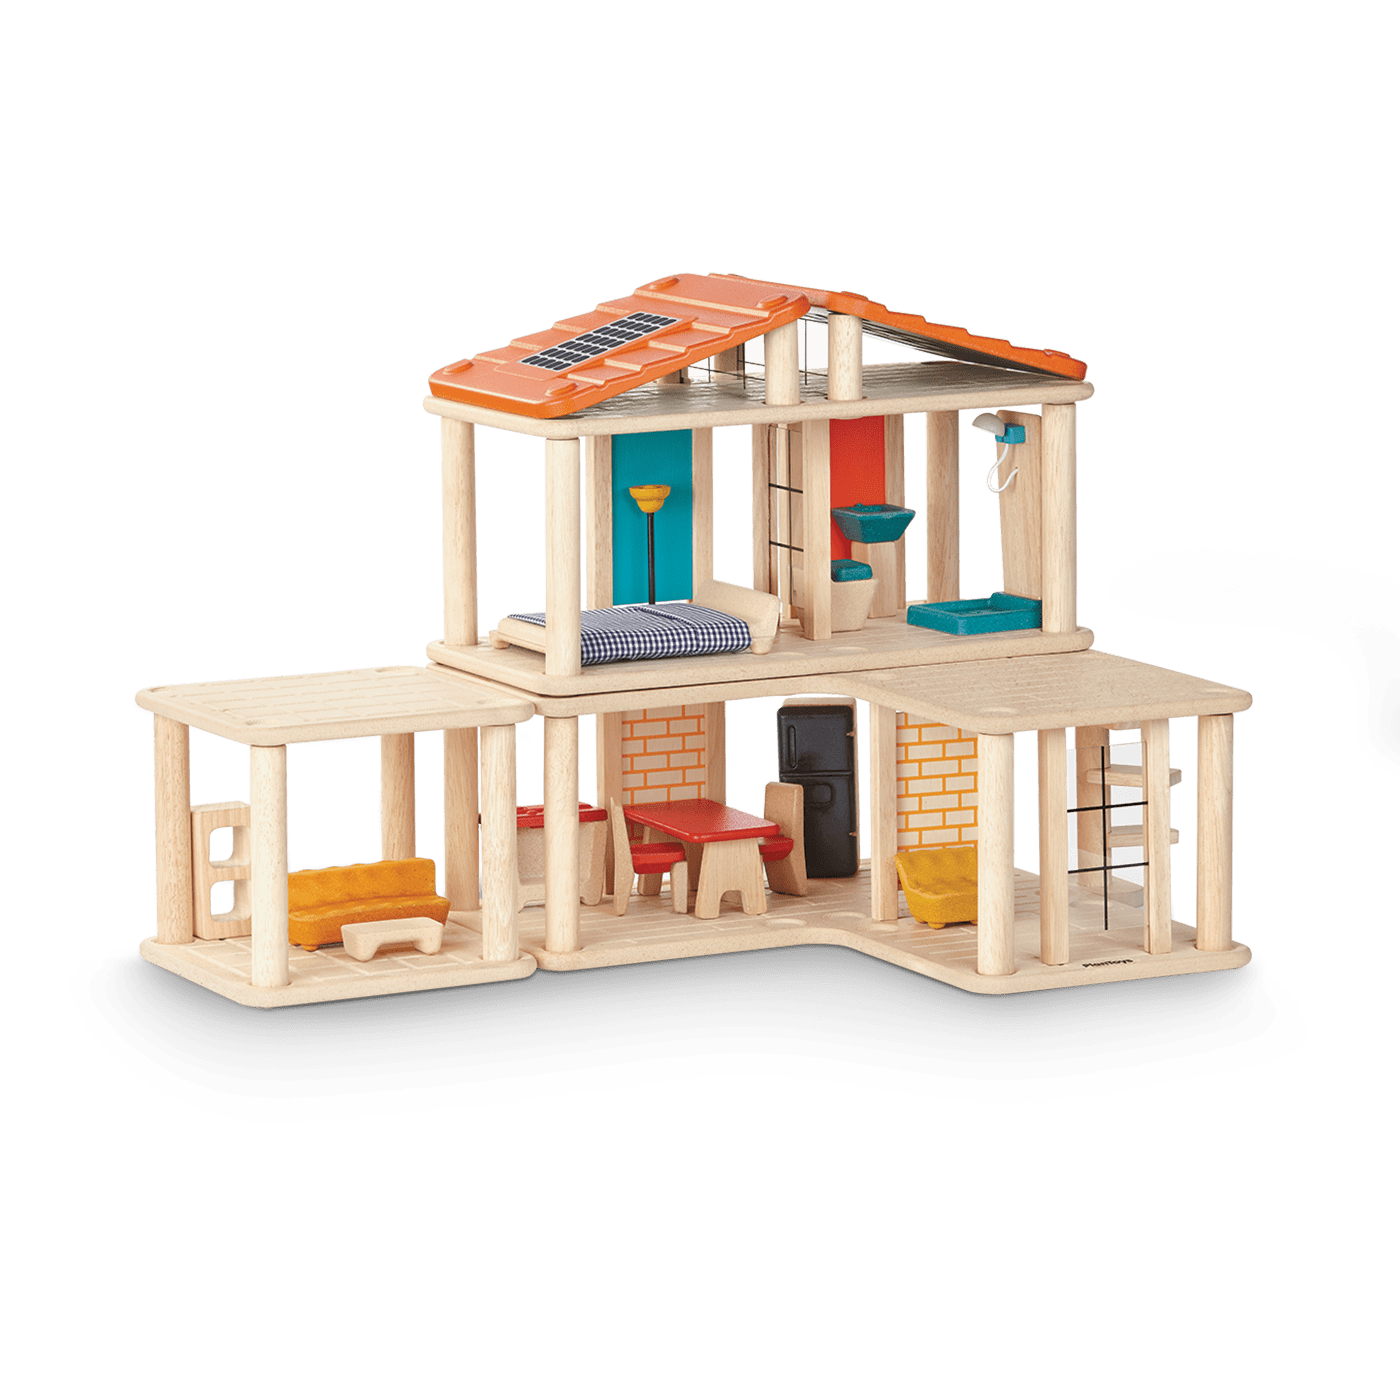 7610_PlanToys_CREATIVE_PLAY_HOUSE_Pretend_Play_Imagination_Coordination_Language_and_Communications_Social_Fine_Motor_3yrs_Wooden_toys_Education_toys_Safety_Toys_Non-toxic_0.png